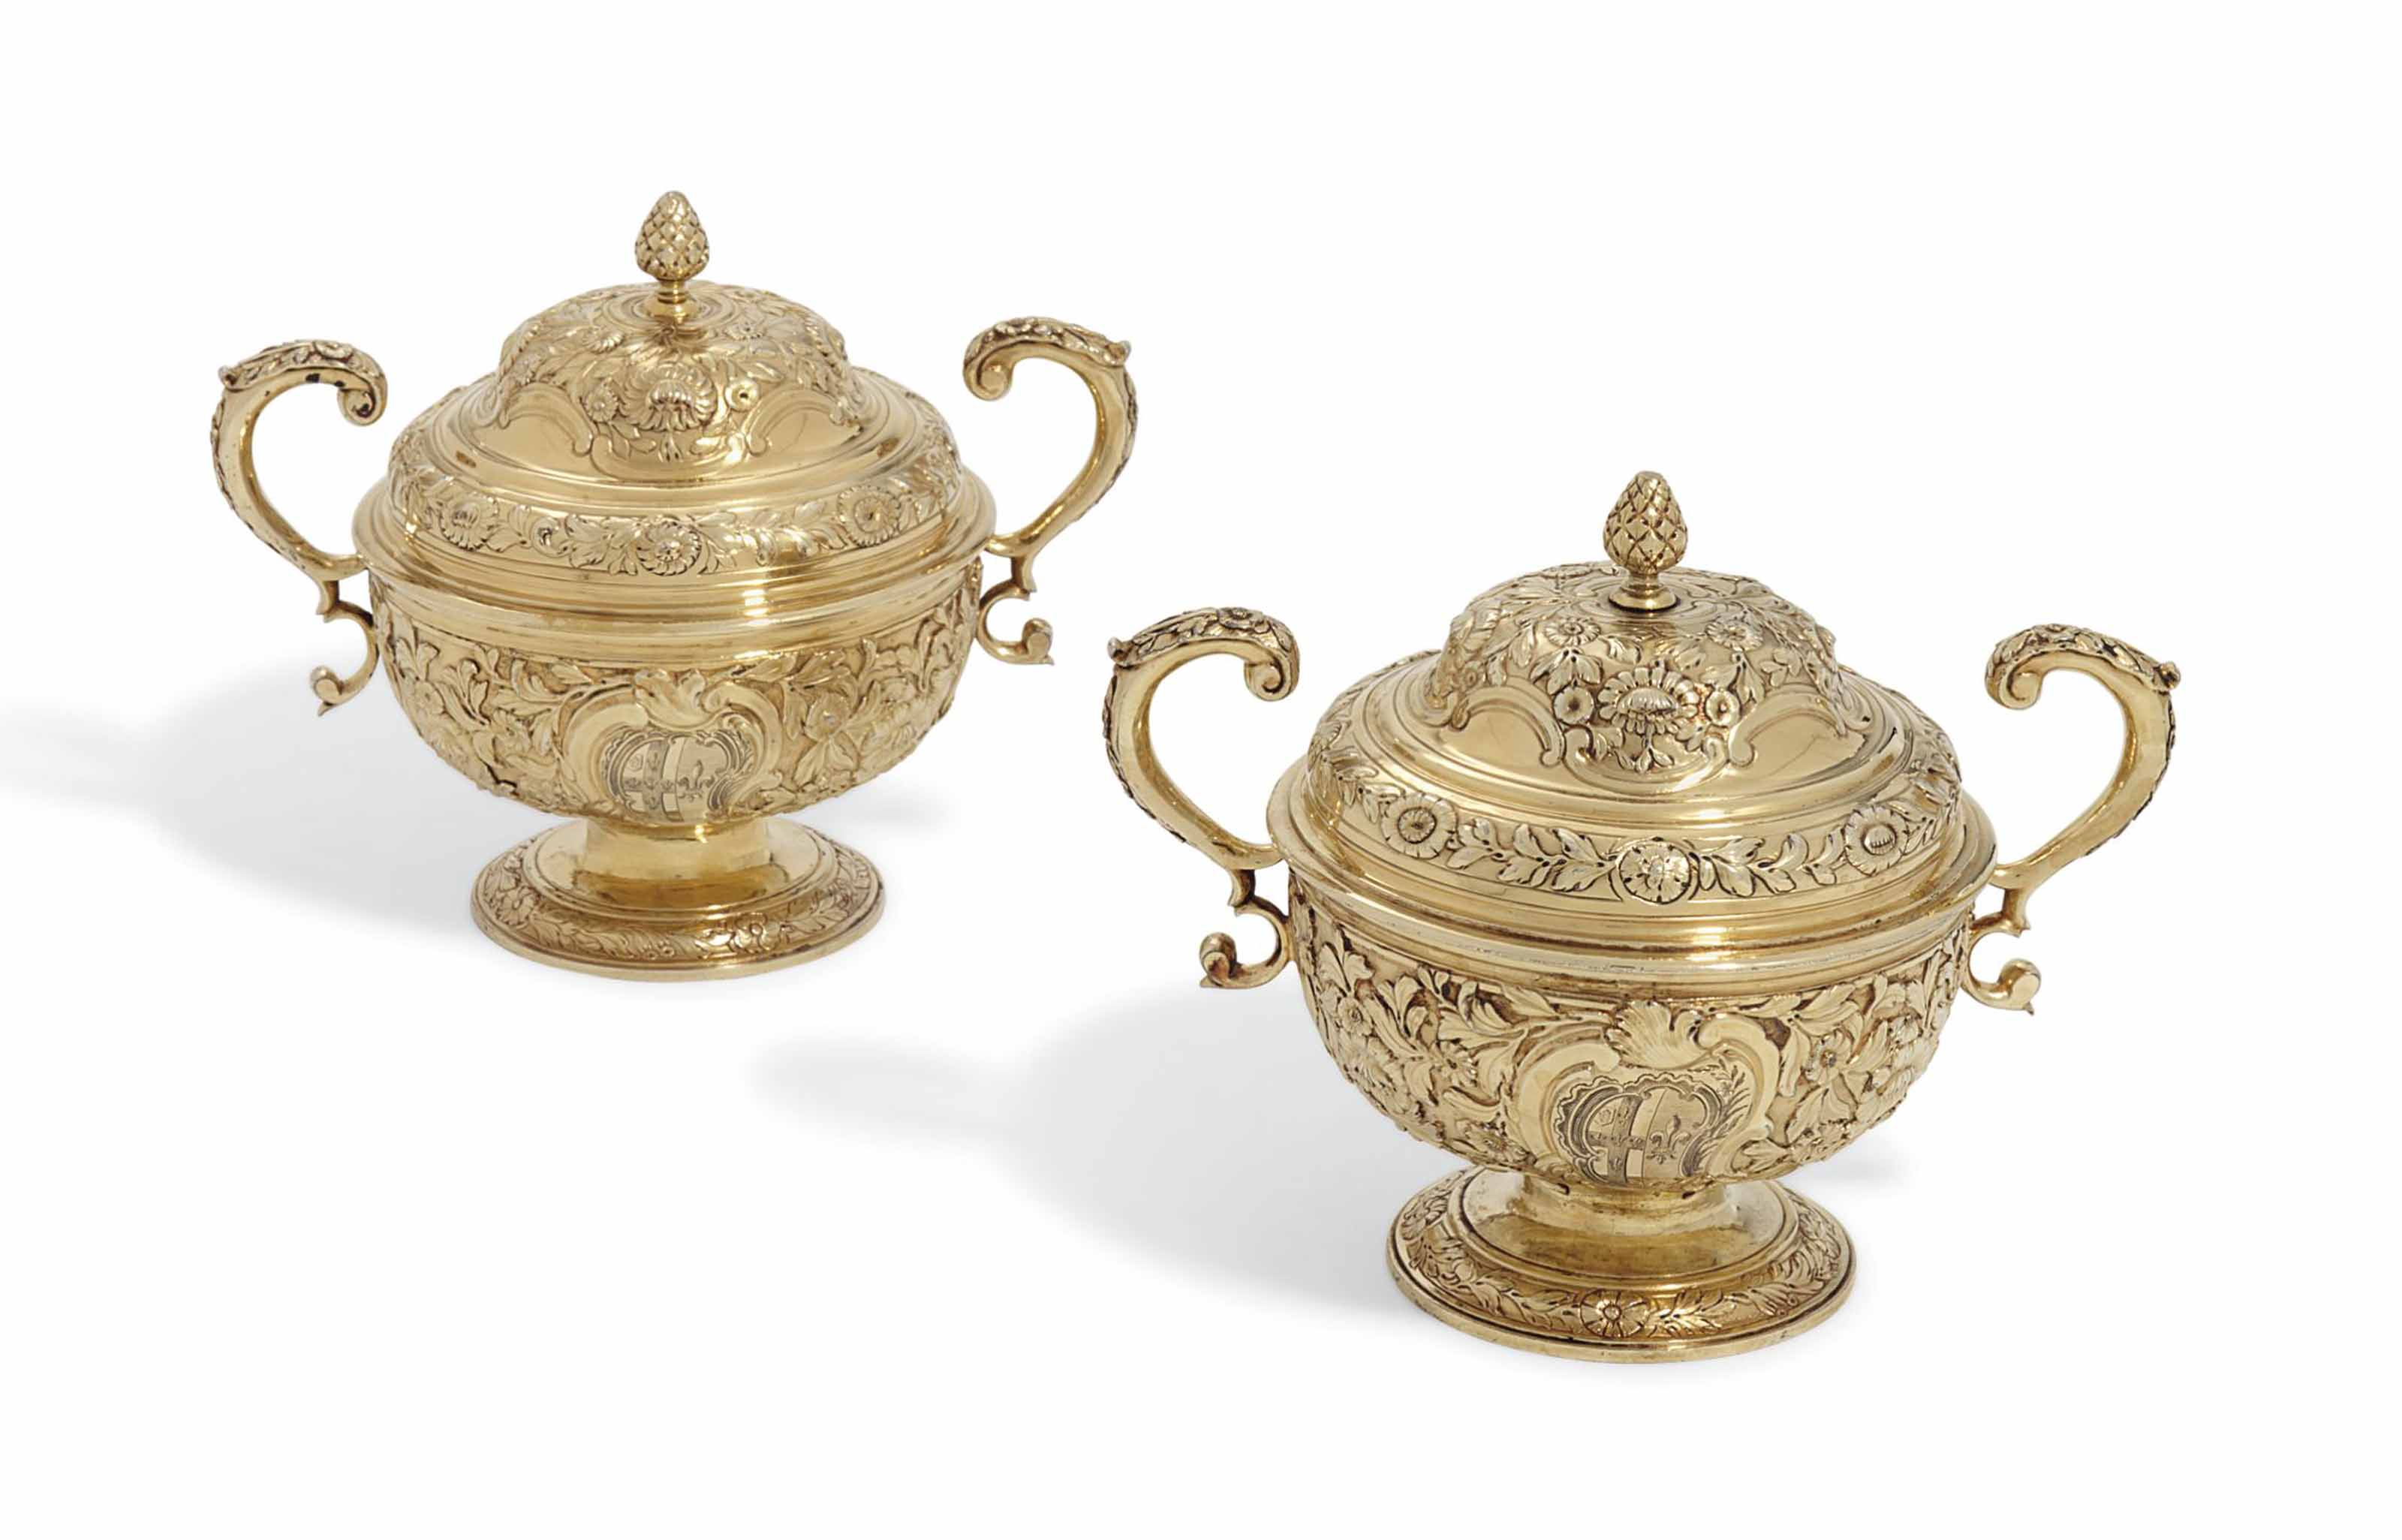 A PAIR OF GEORGE II SILVER-GILT CUPS AND COVERS